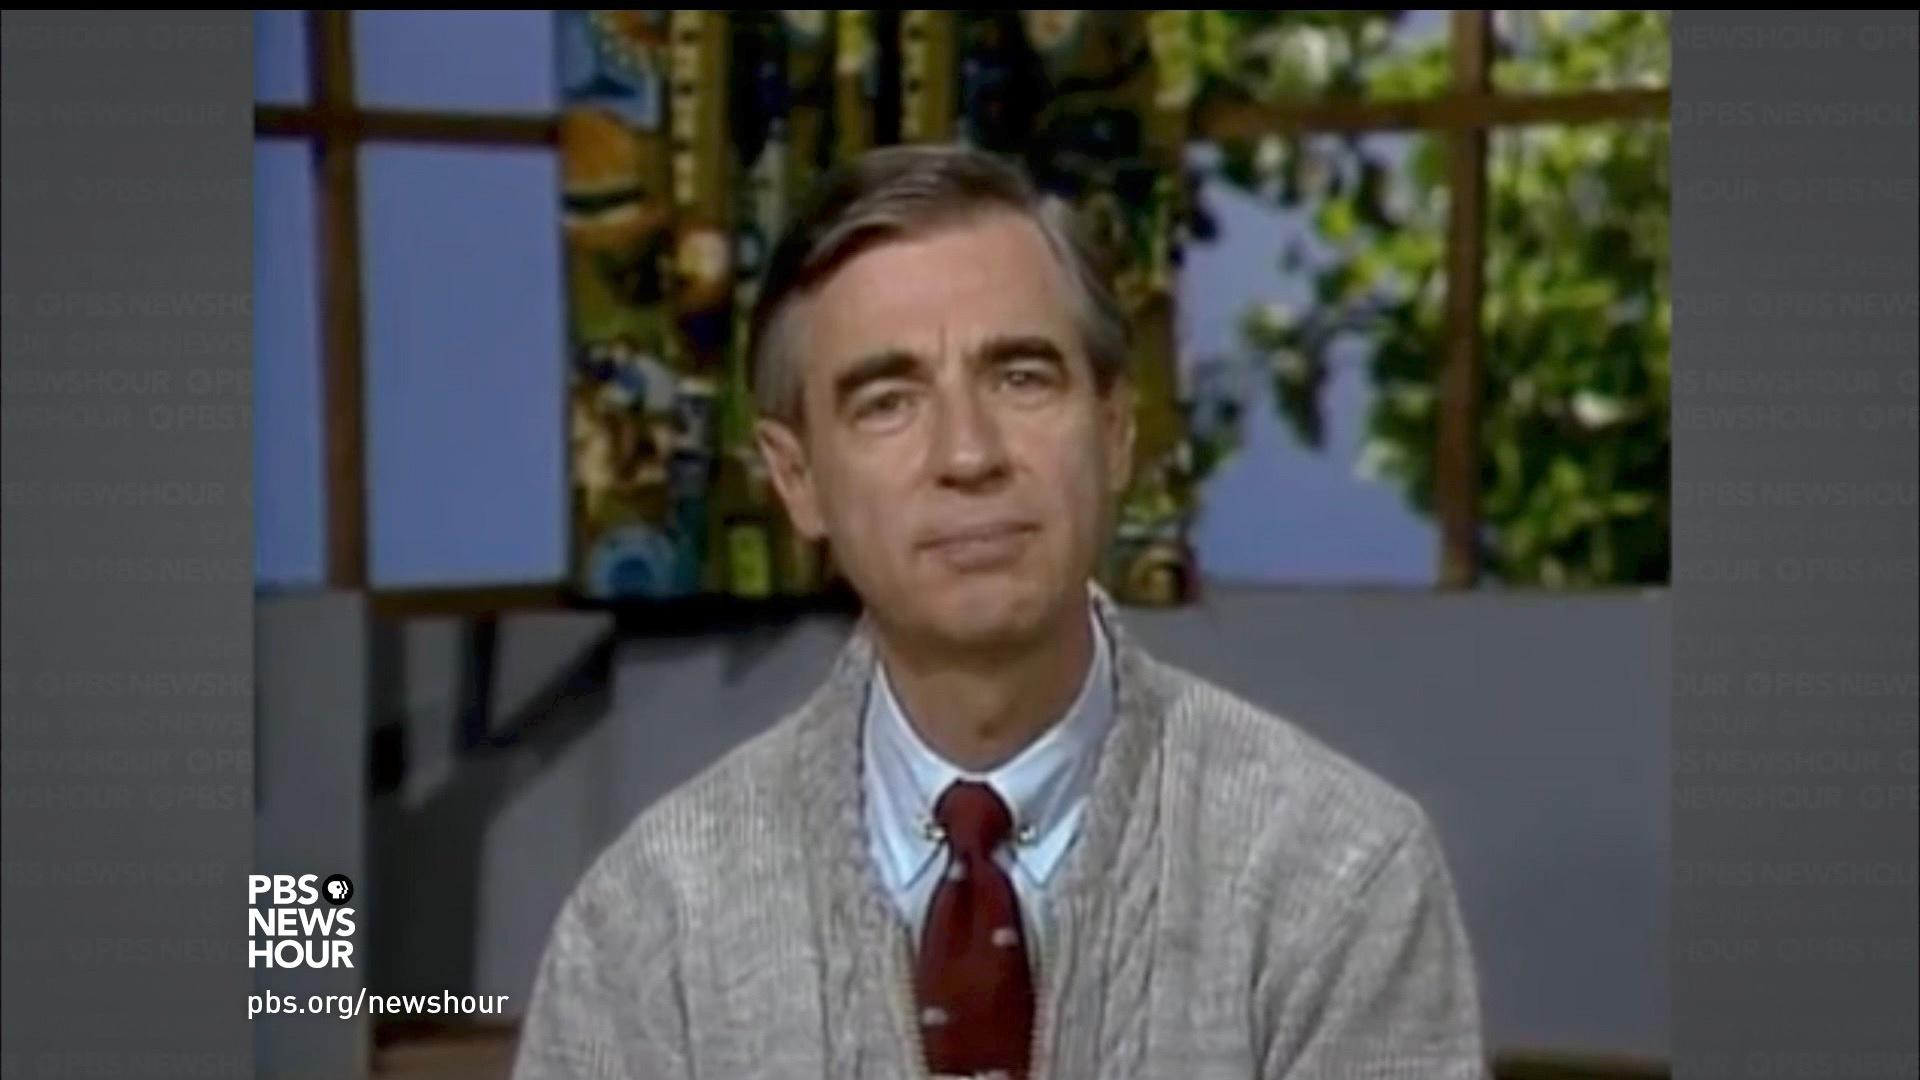 Pbs Newshour That Time Mister Rogers Comforted Me In Real Life Season 2017 Pbs